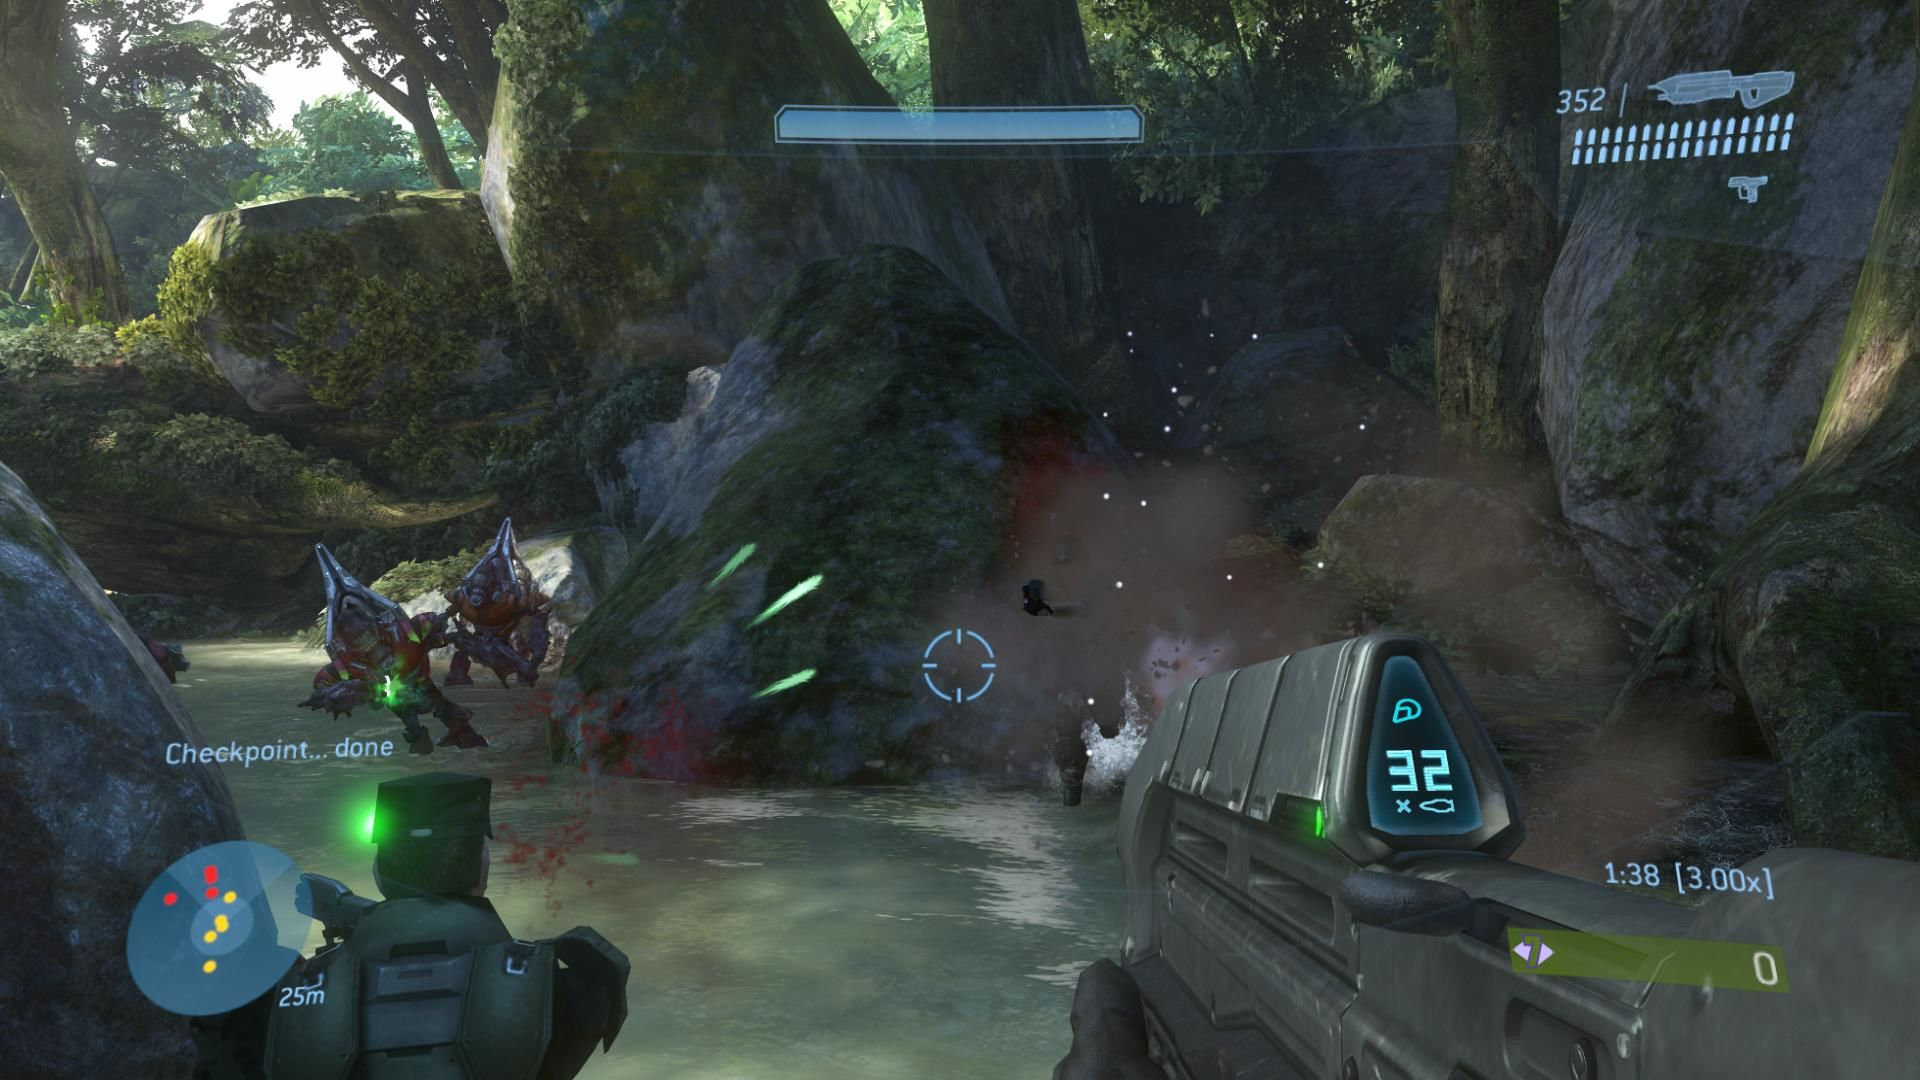 Halo 3 Xbox 360 My NPC buddy is helping me against those grunts.